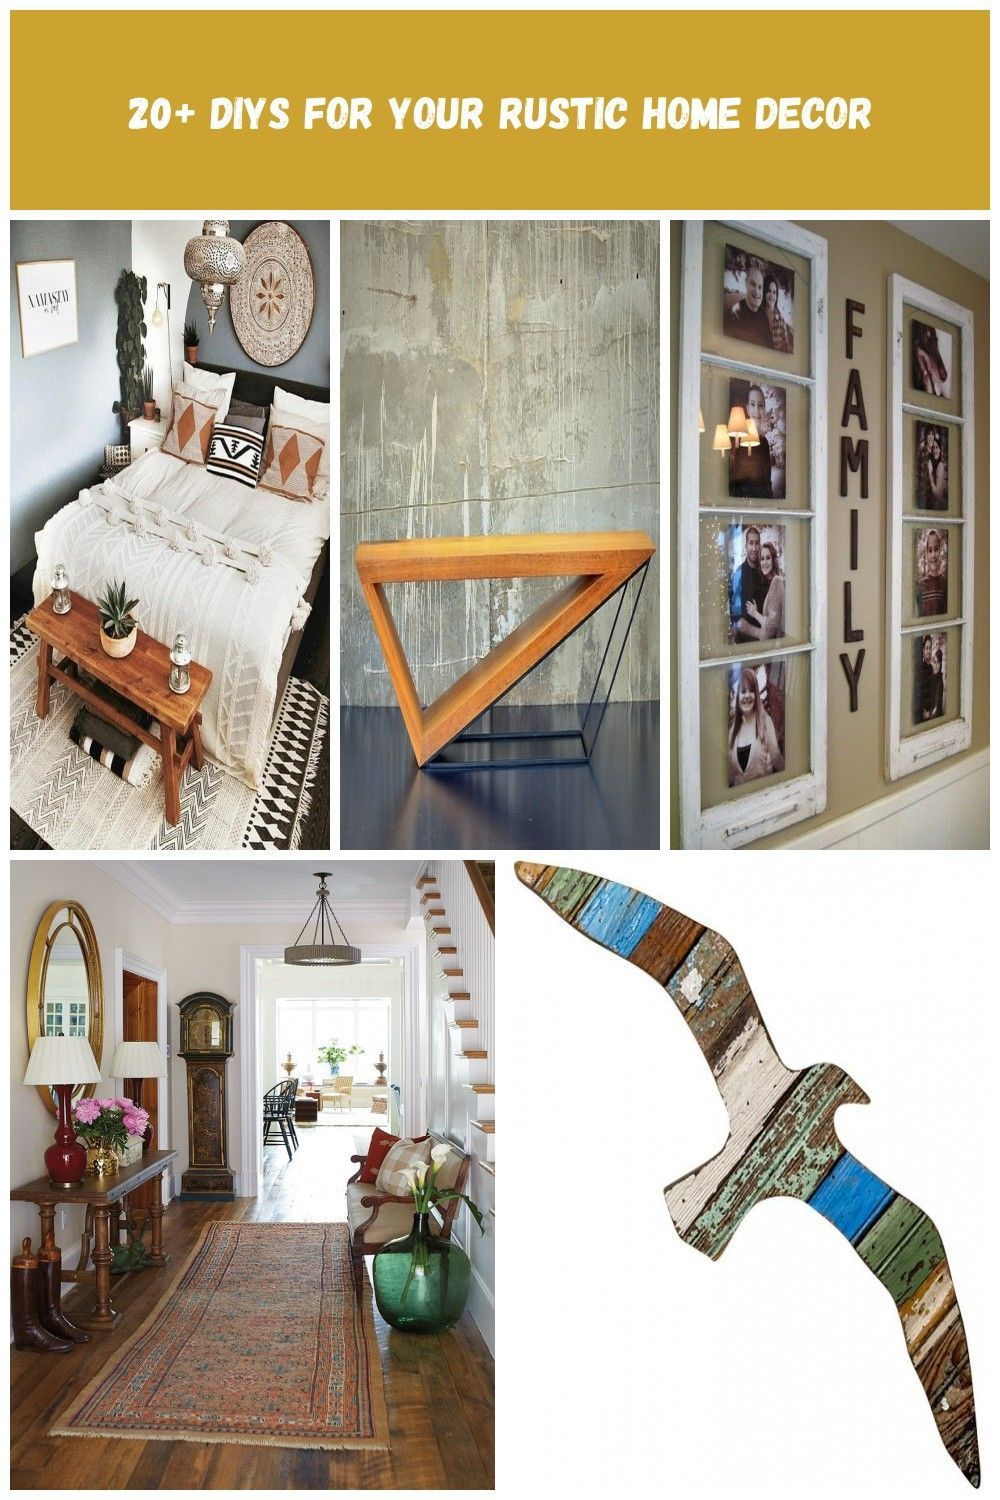 New The 10 Best Home Decor Today with Pictures southern home decor